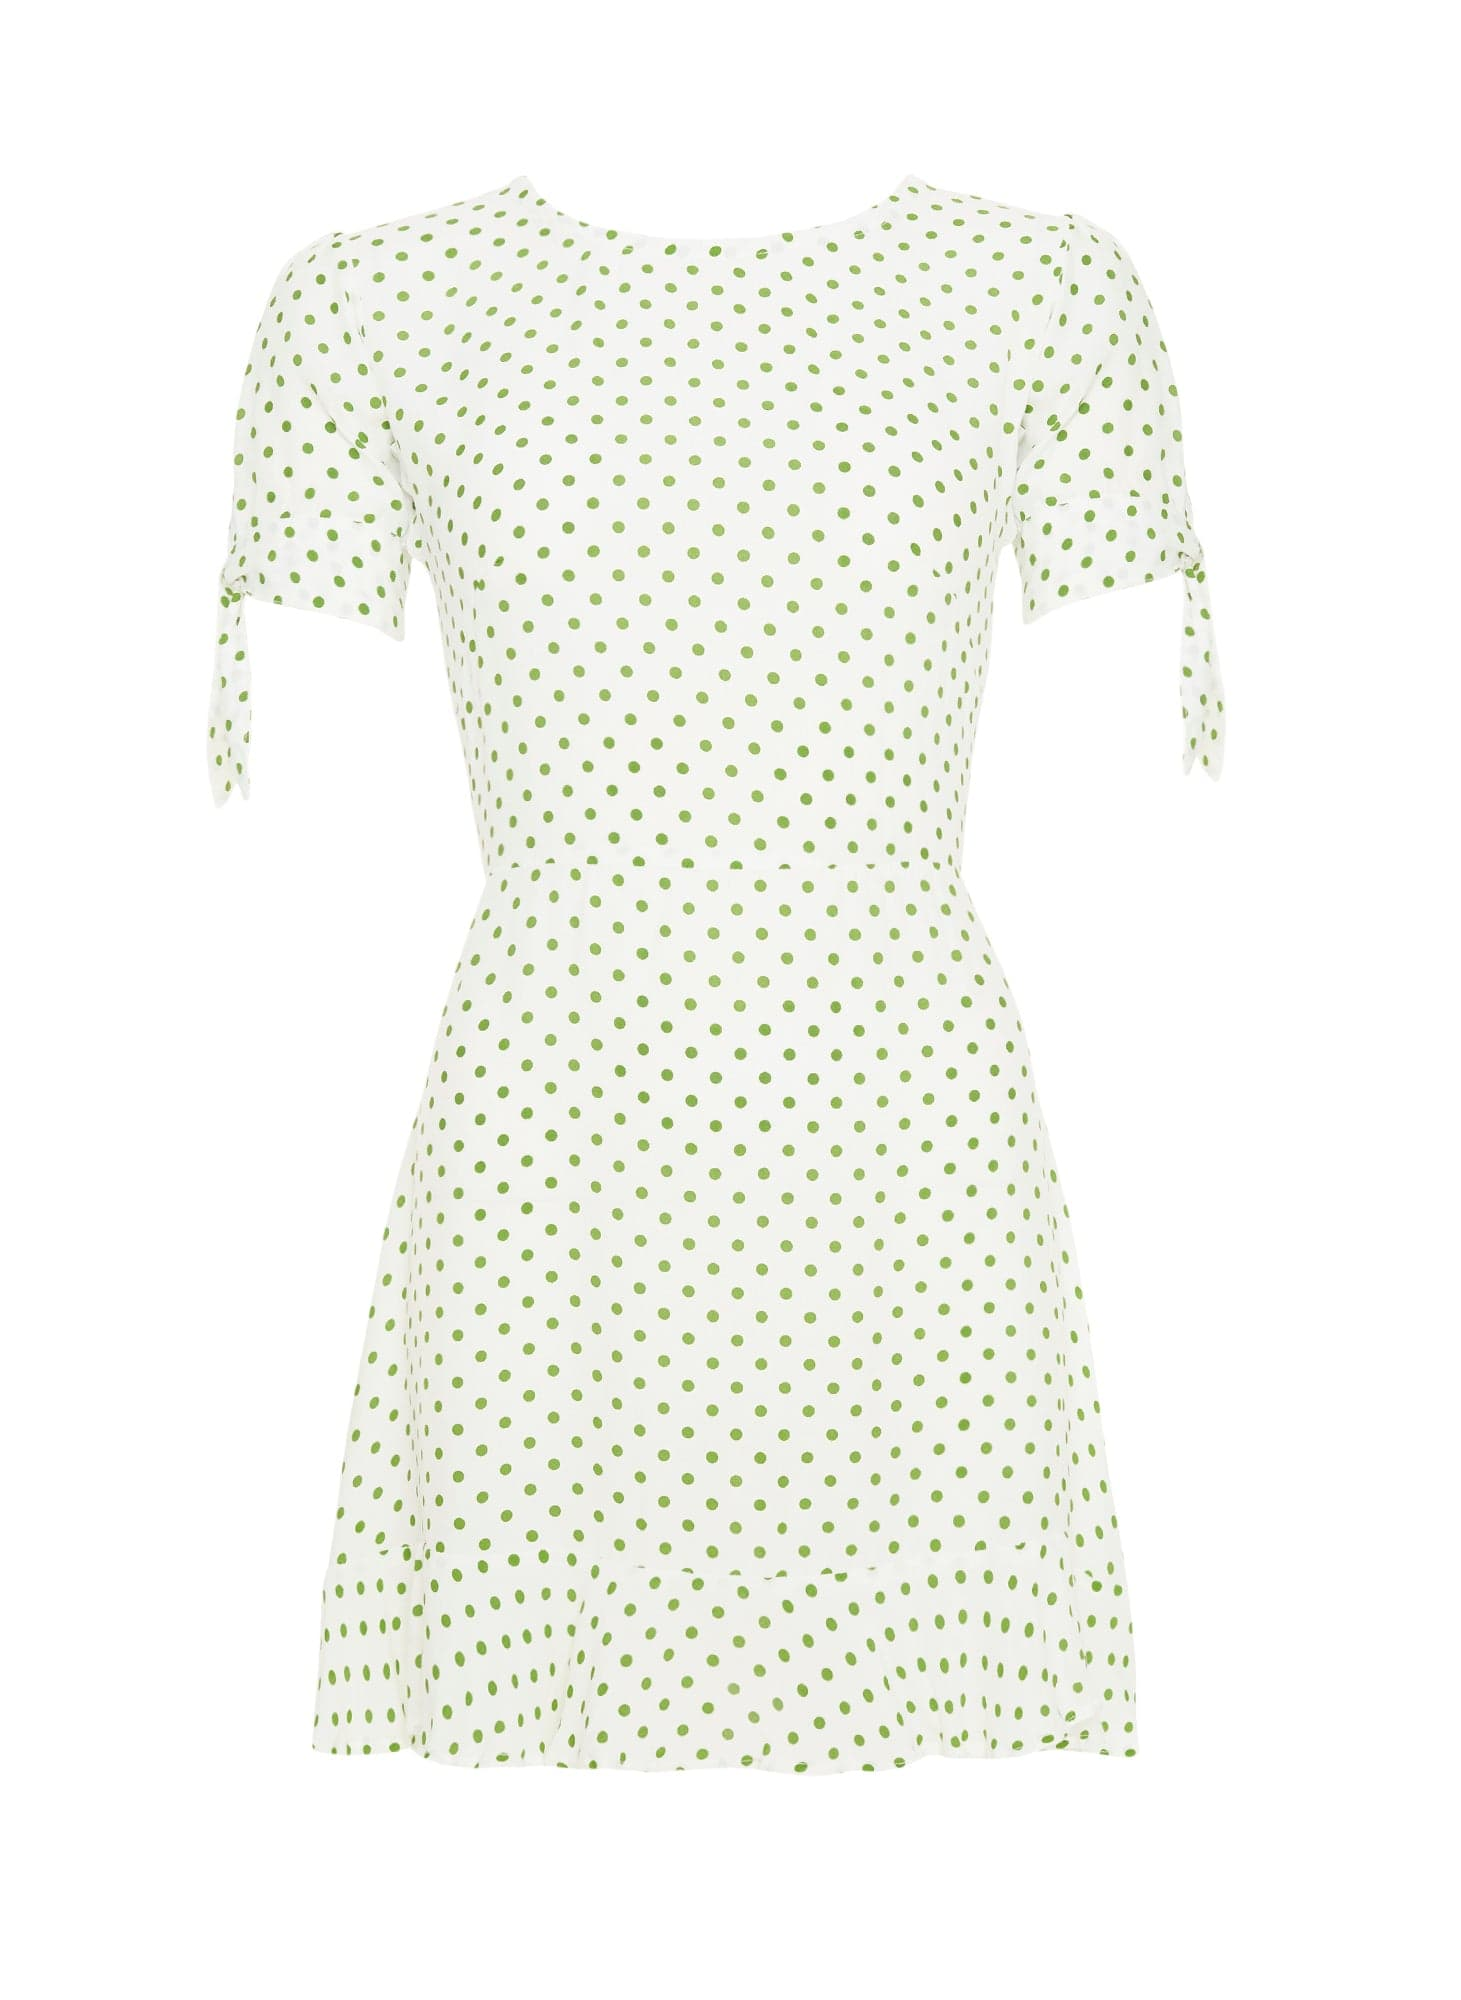 LULA DOT PRINT - GREEN - DAPHNE DRESS